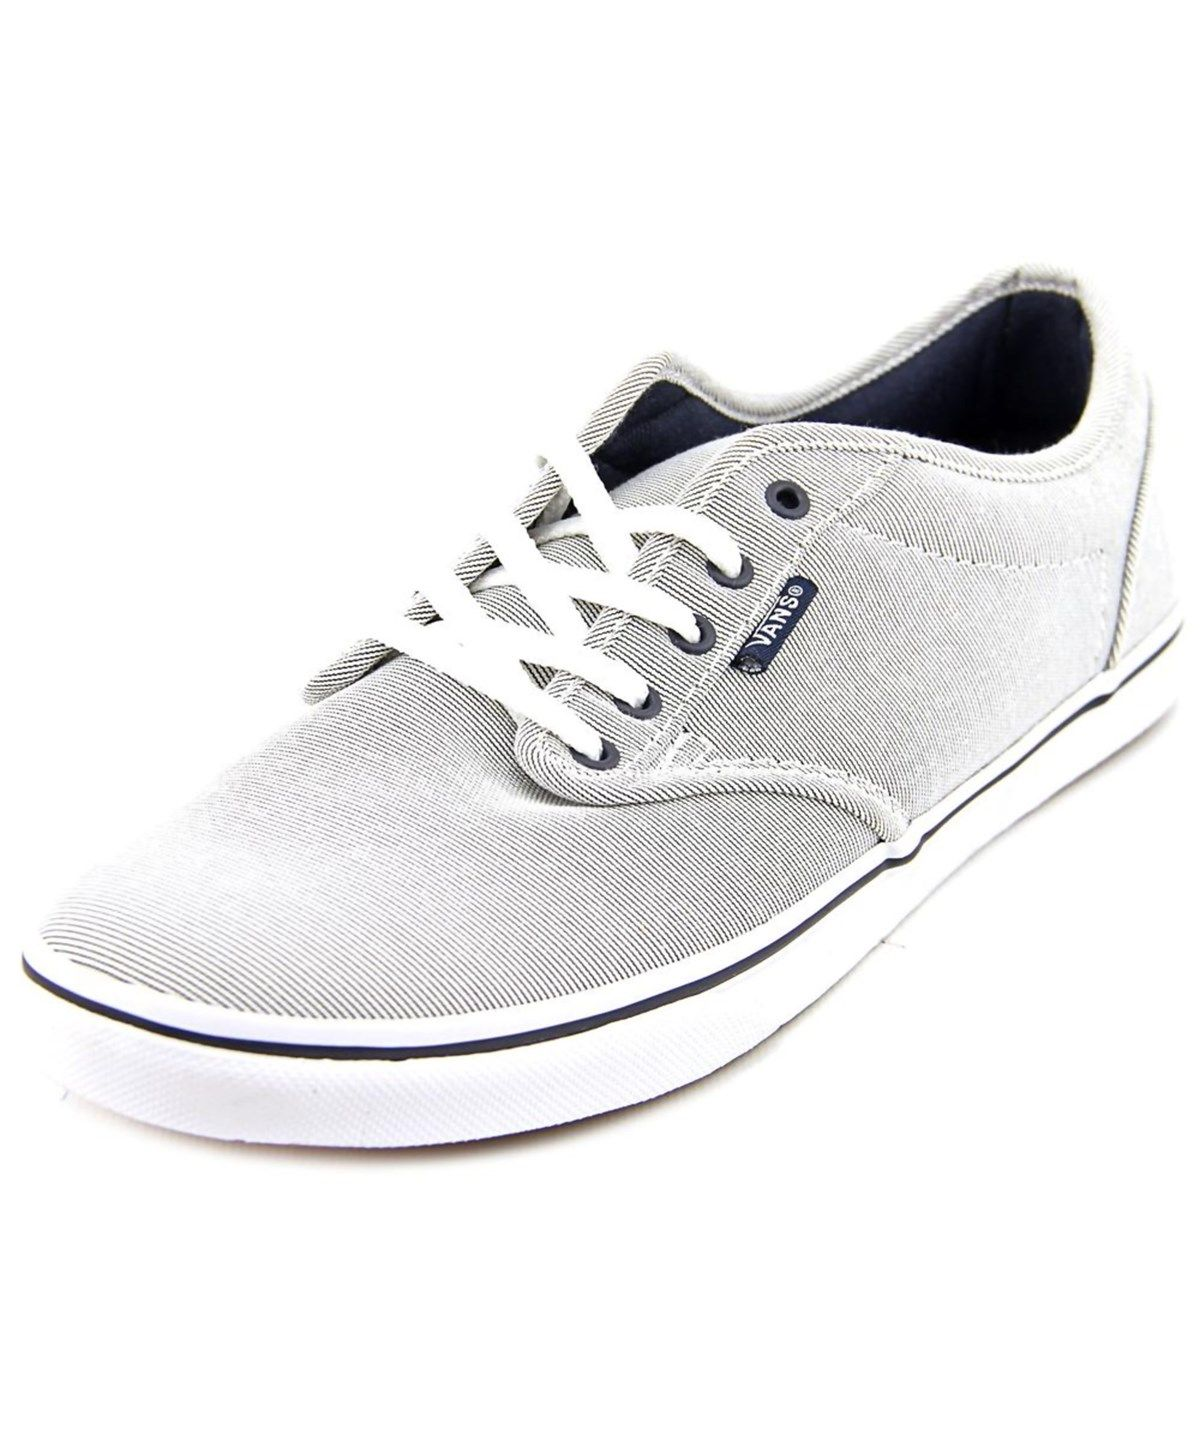 db86f2c441 VANS Vans Atwood Low Round Toe Canvas Skate Shoe .  vans  shoes  sneakers